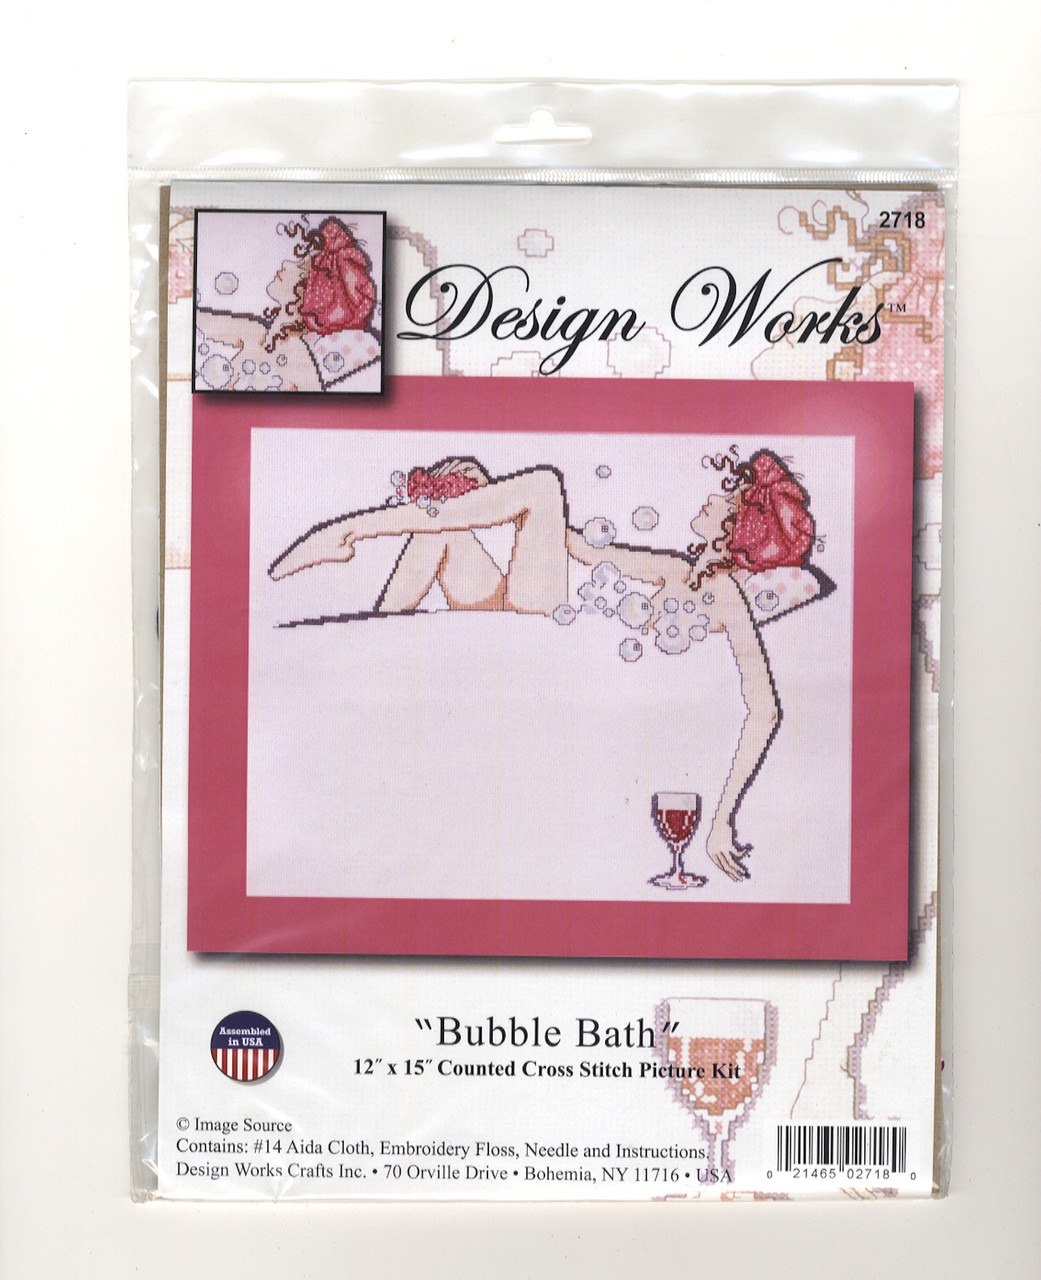 Design Works - Bubble Bath